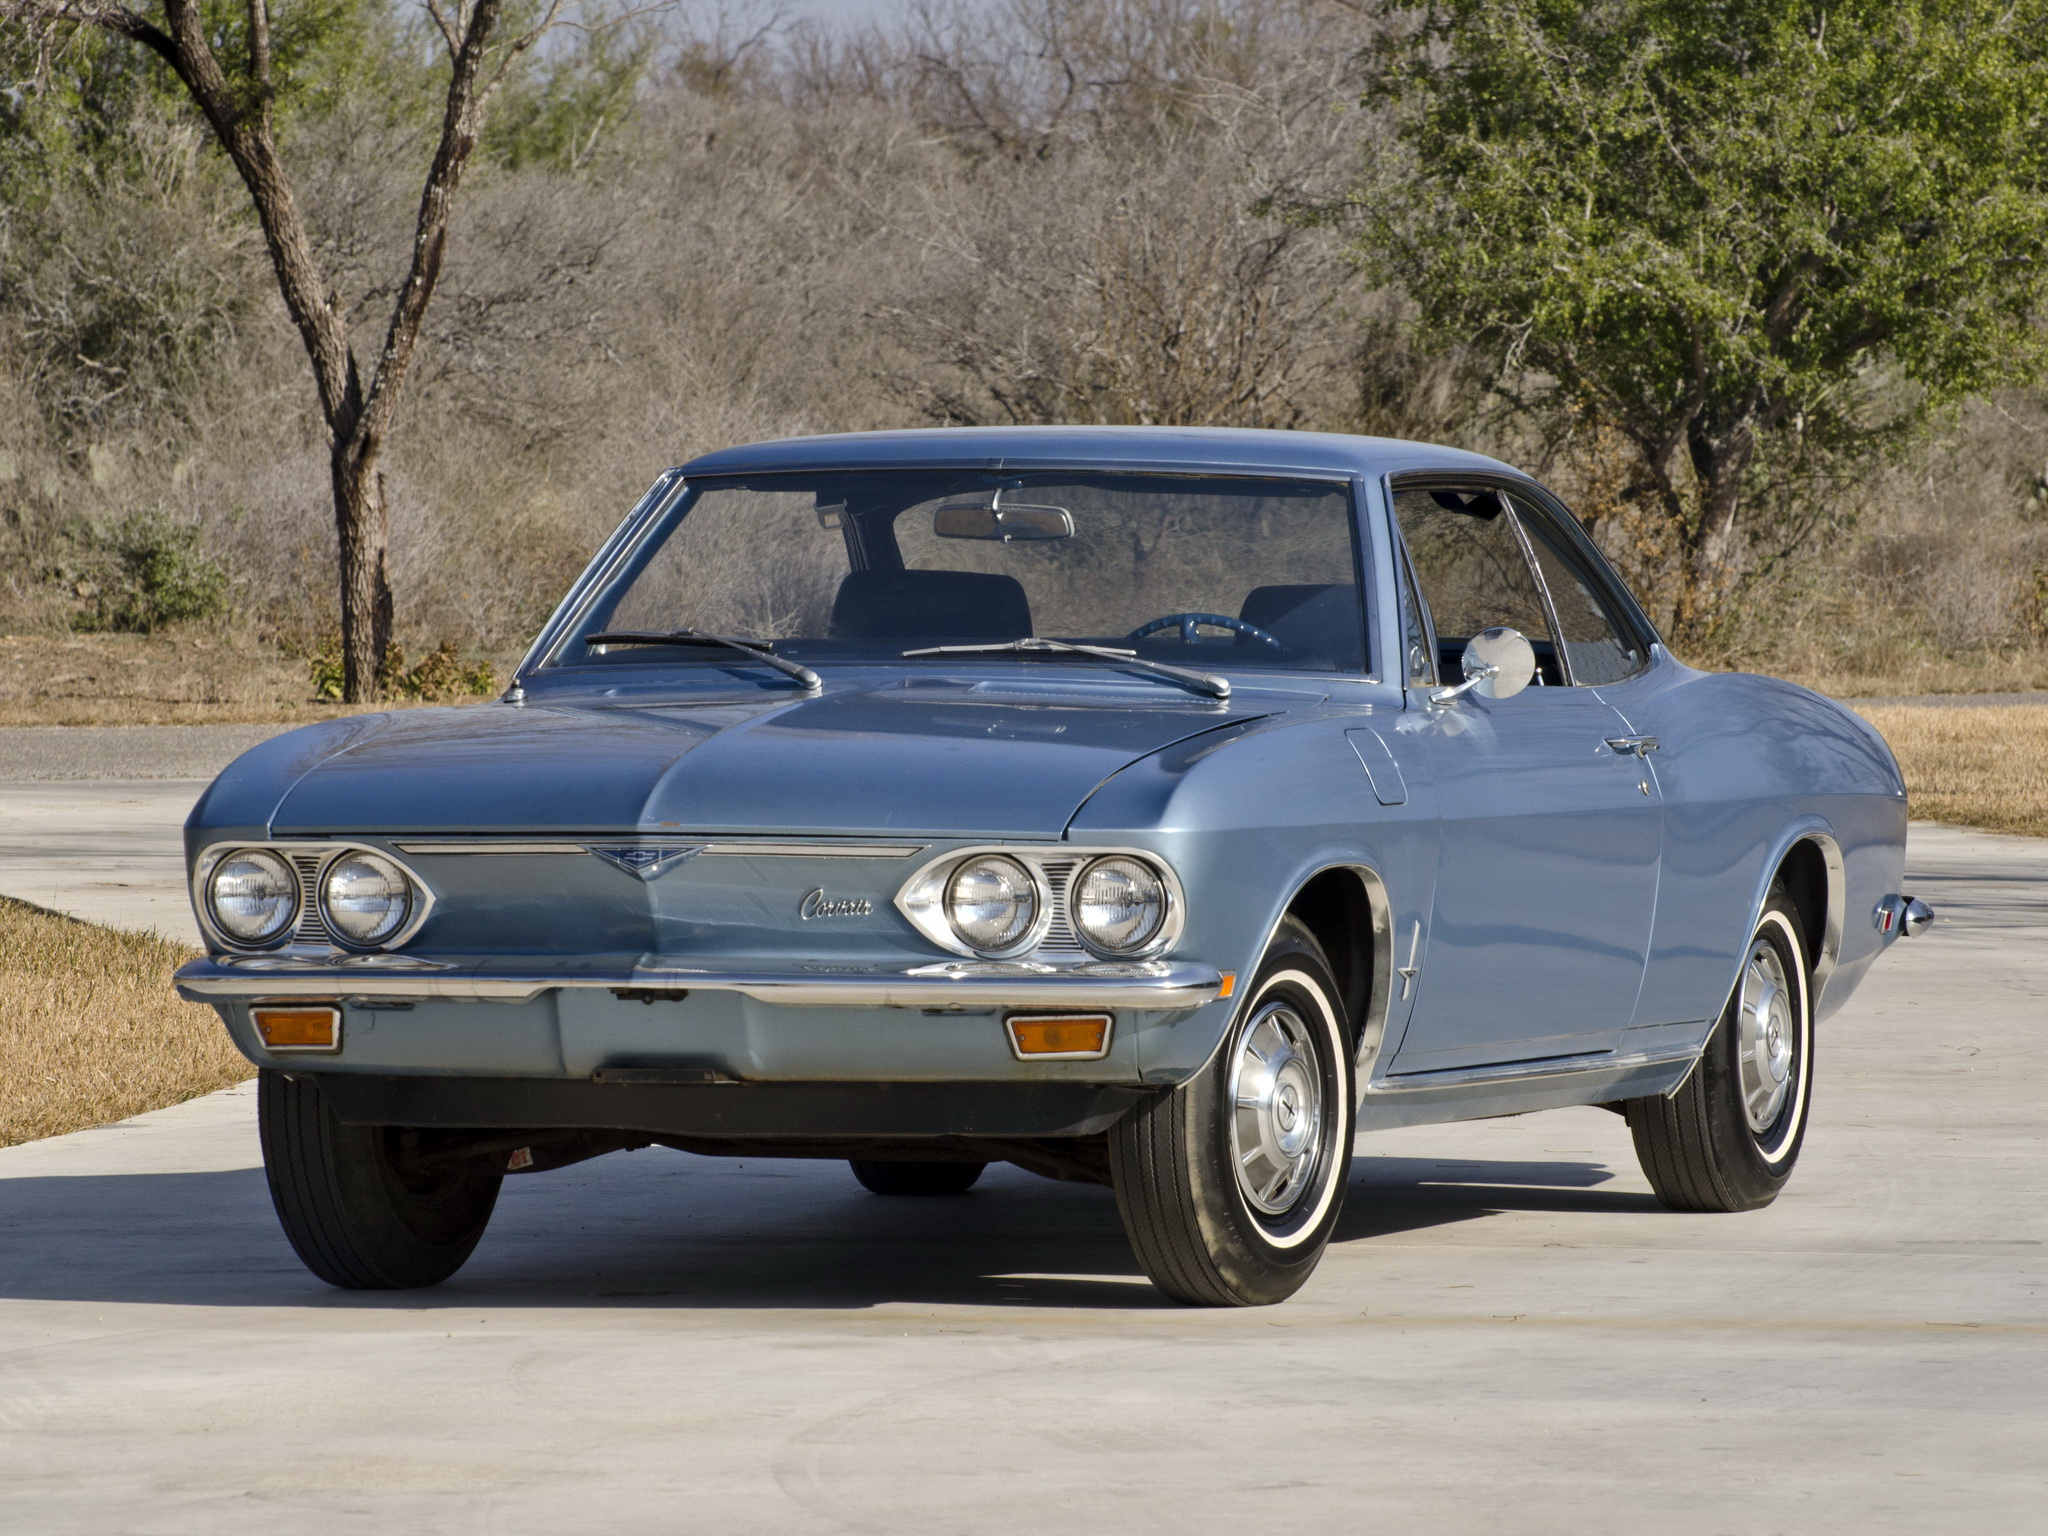 Chevrolet-Corvair-coupe Interesting Tvr Griffith 500 Ignition Timing Cars Trend